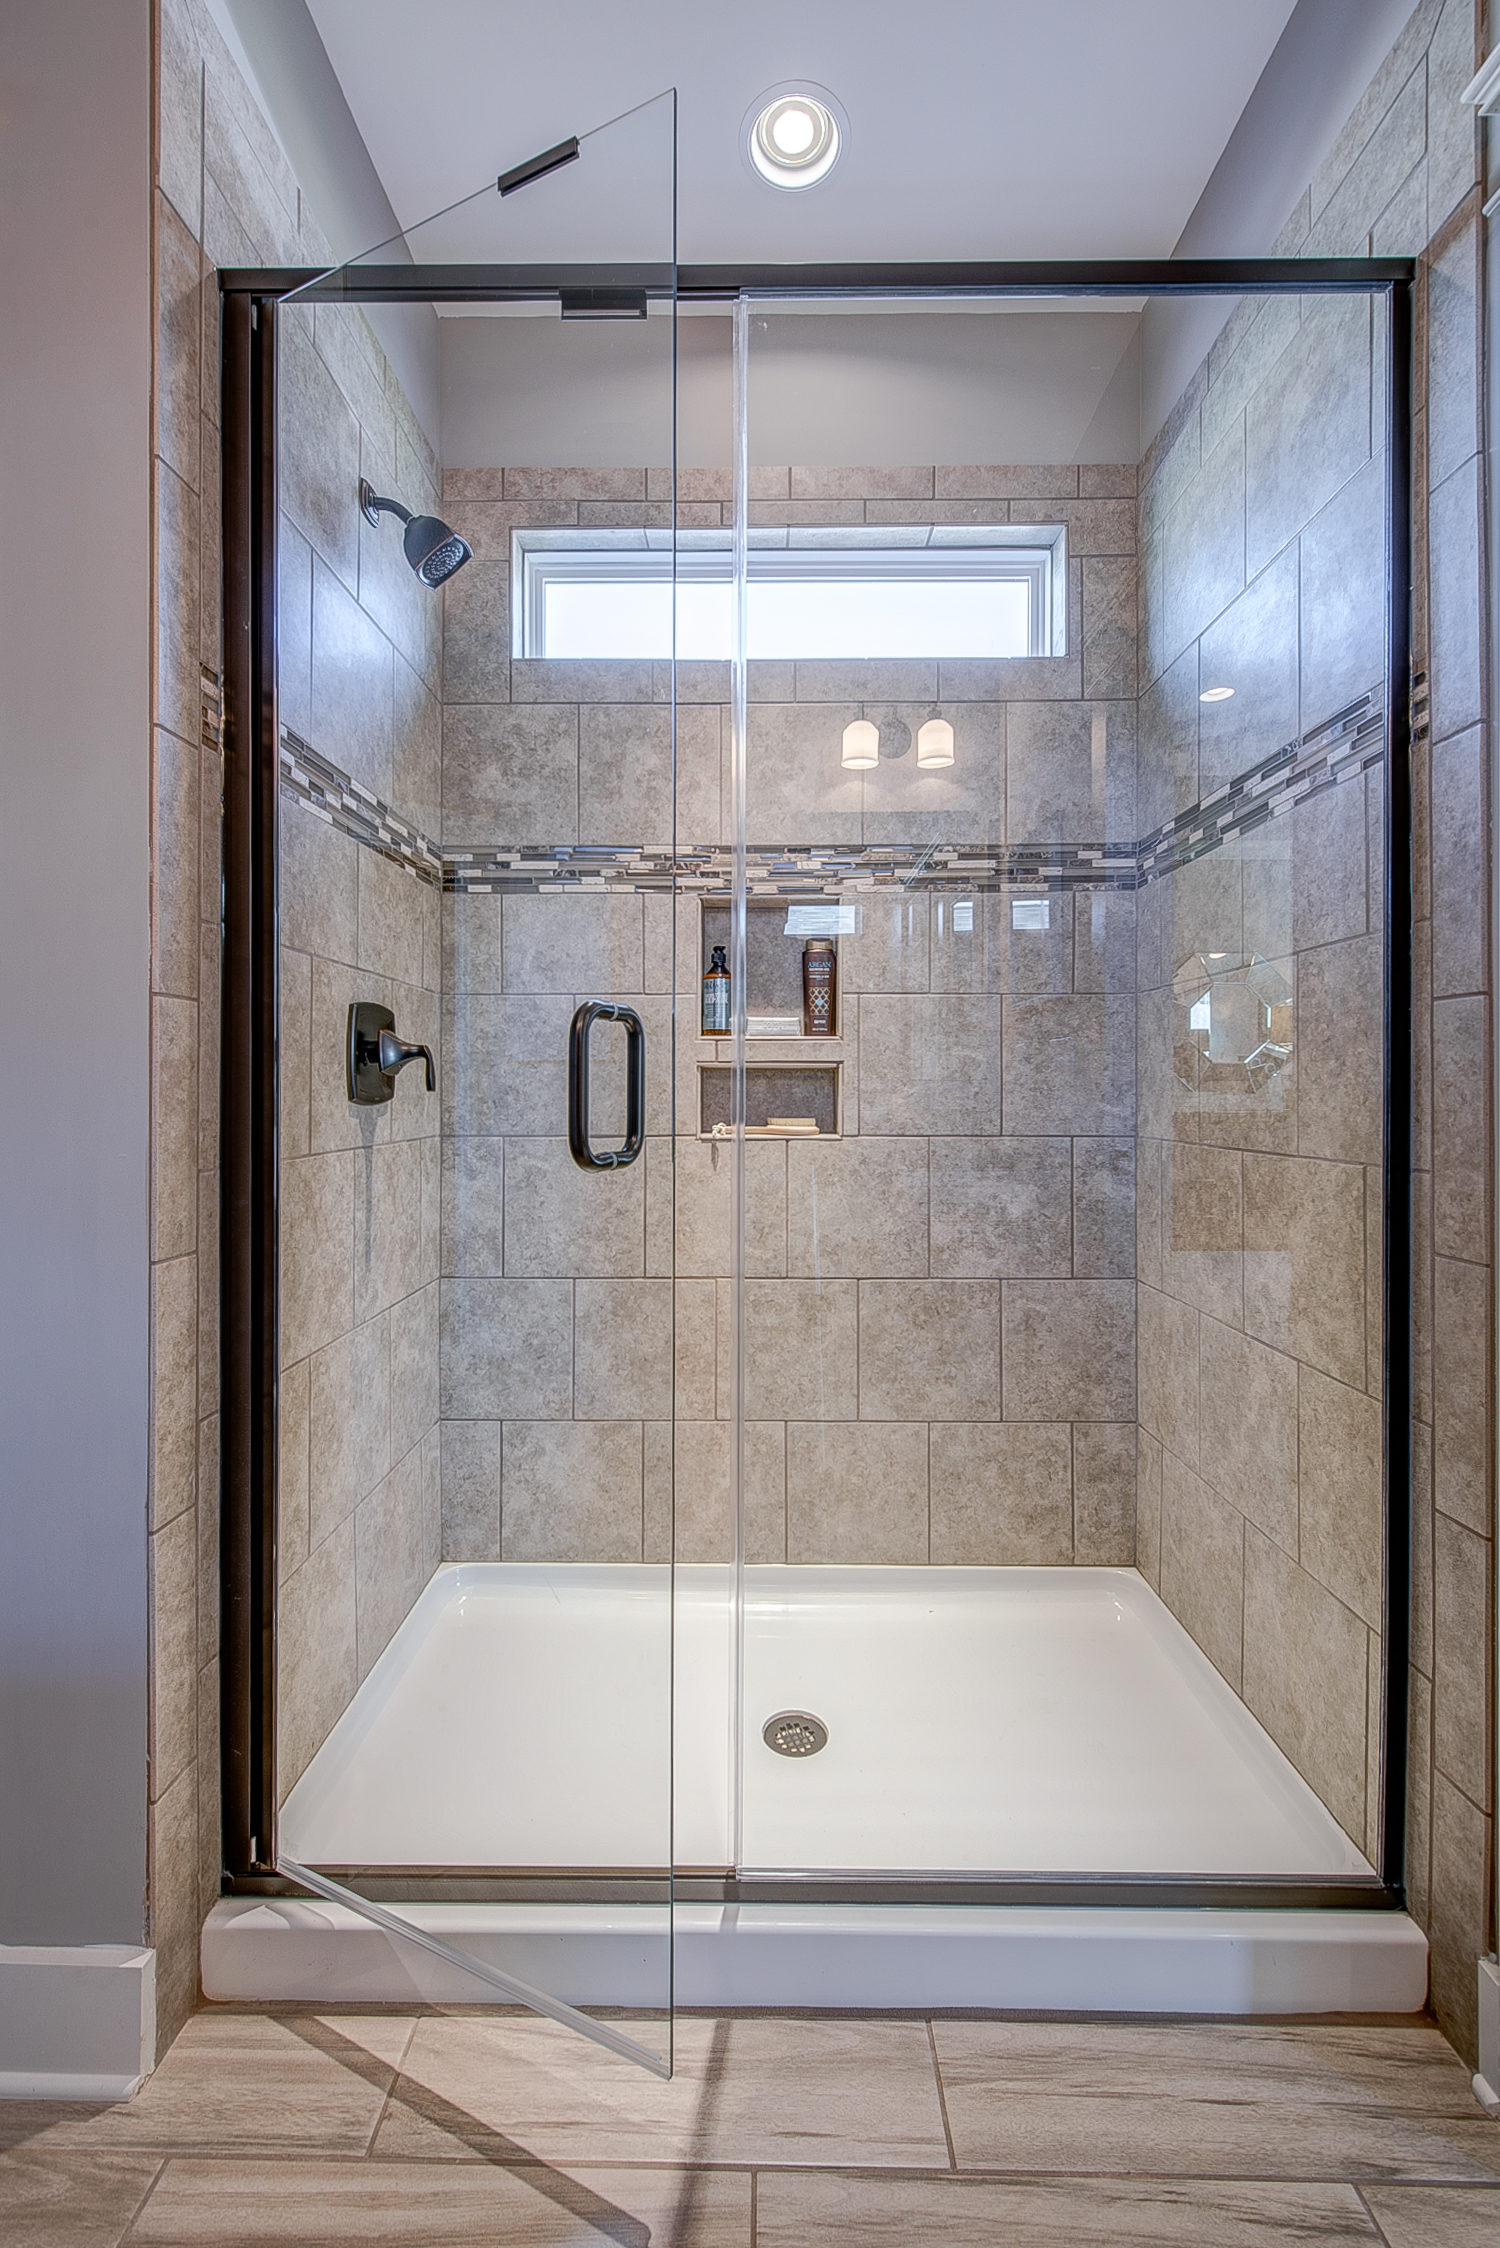 104-bushney-loop-mooresville-print-029-17-owners-bathroom-1500x2248-300dpi_33373102140_o.jpg